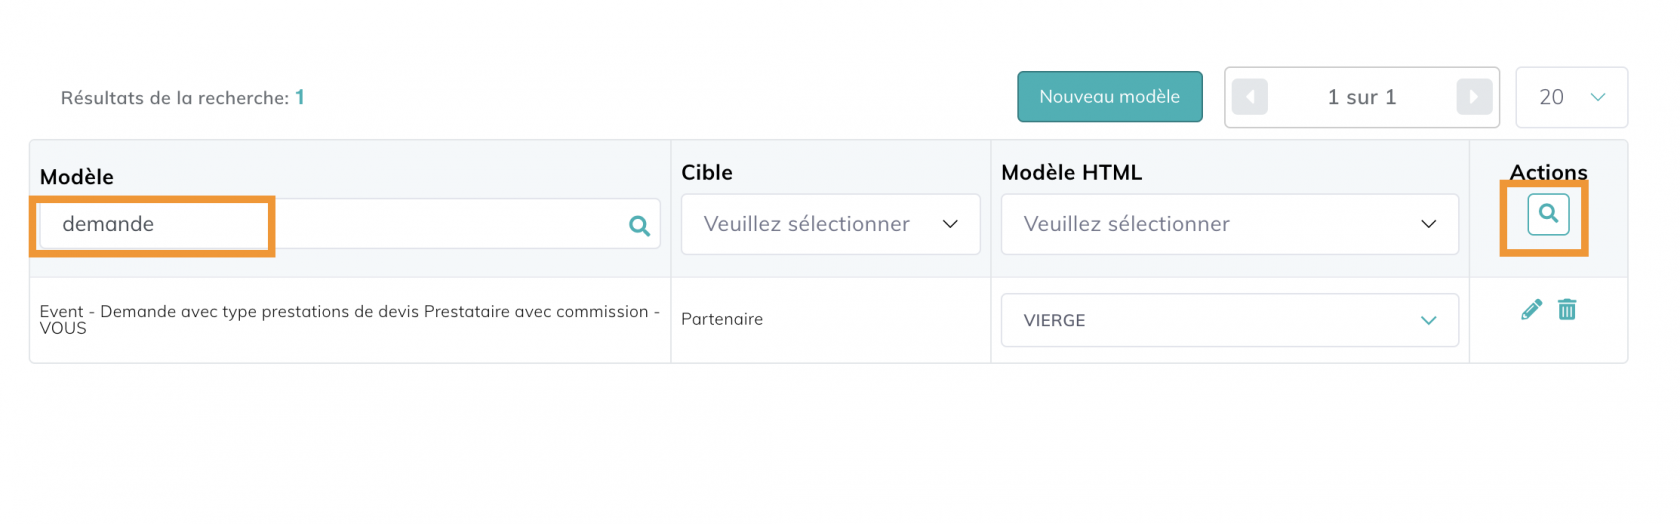 Chercher-modele-email.png